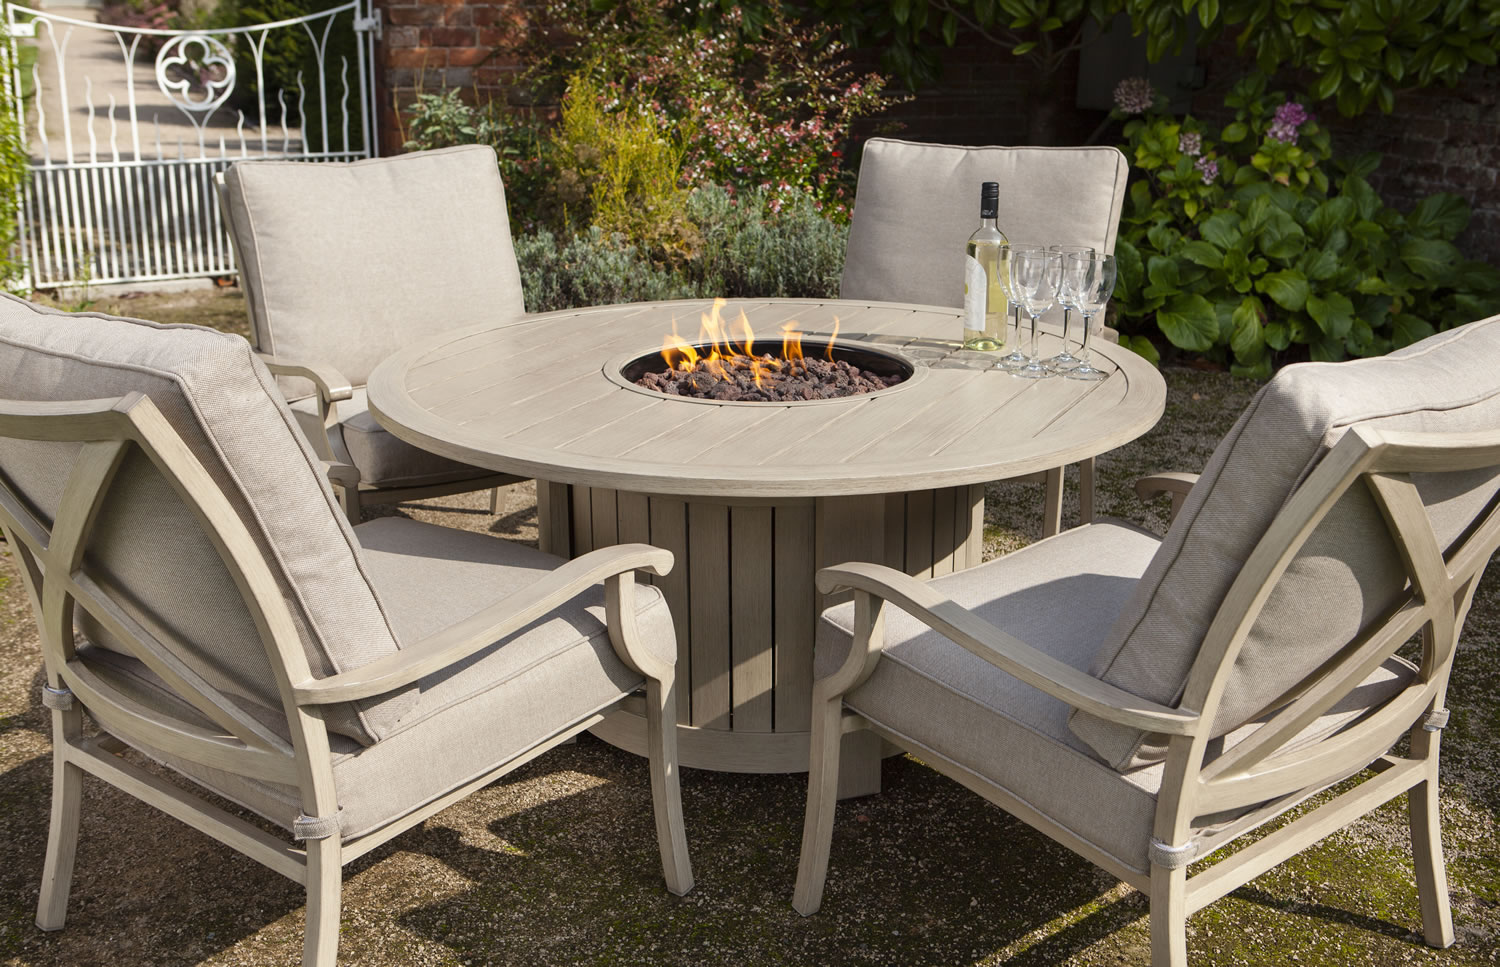 Portland Round 4 Seater Lounge Set With Fire Pit 163 1 439 00 At Garden4less Uk